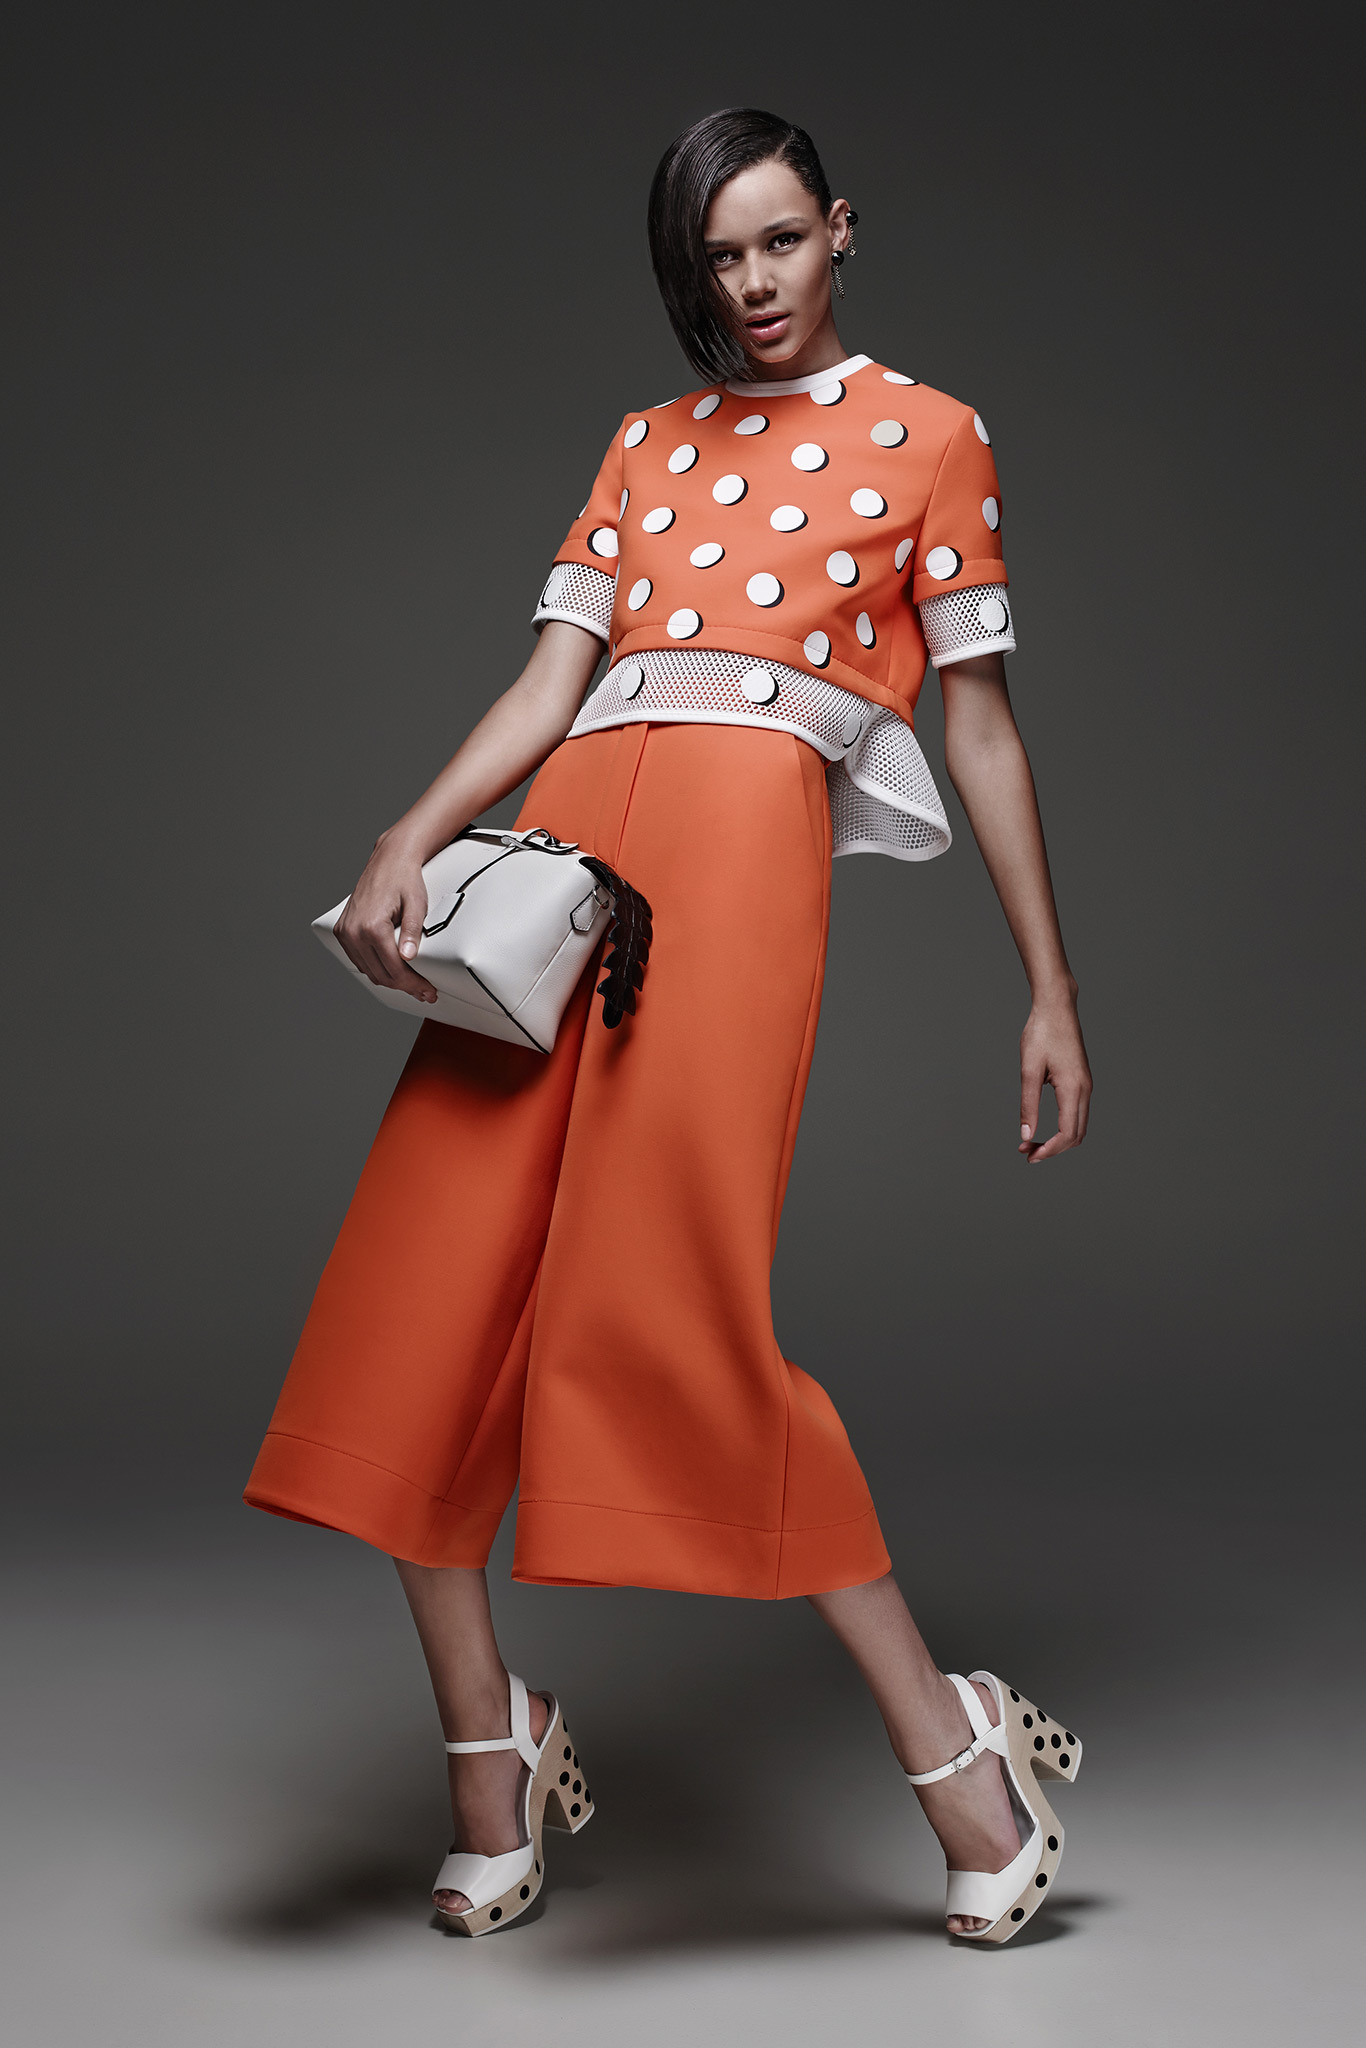 Fendi-resort-2015_binx-walton-campaigns-4